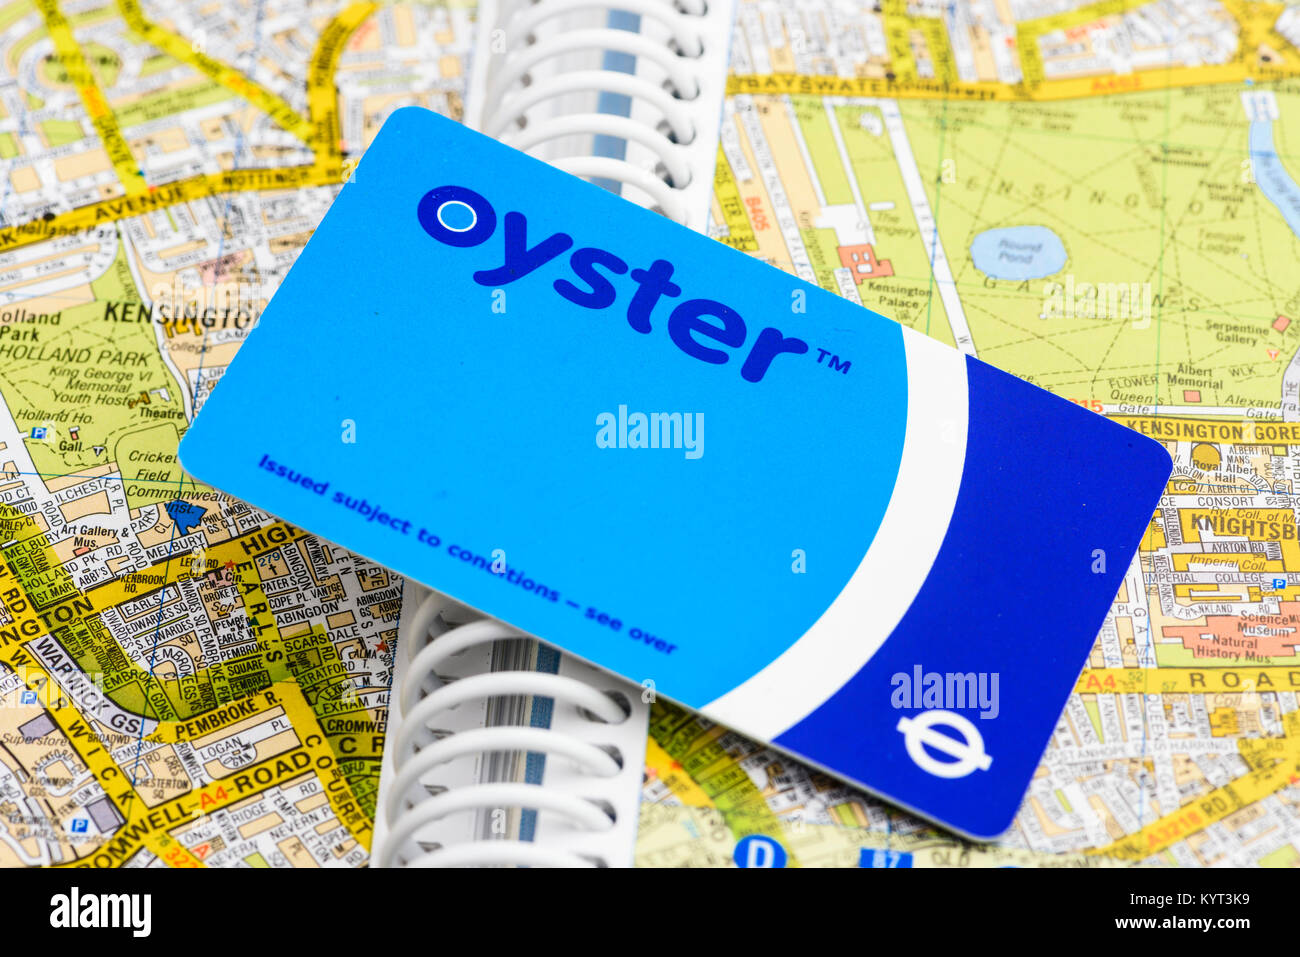 Oyster payment card from Transport for London